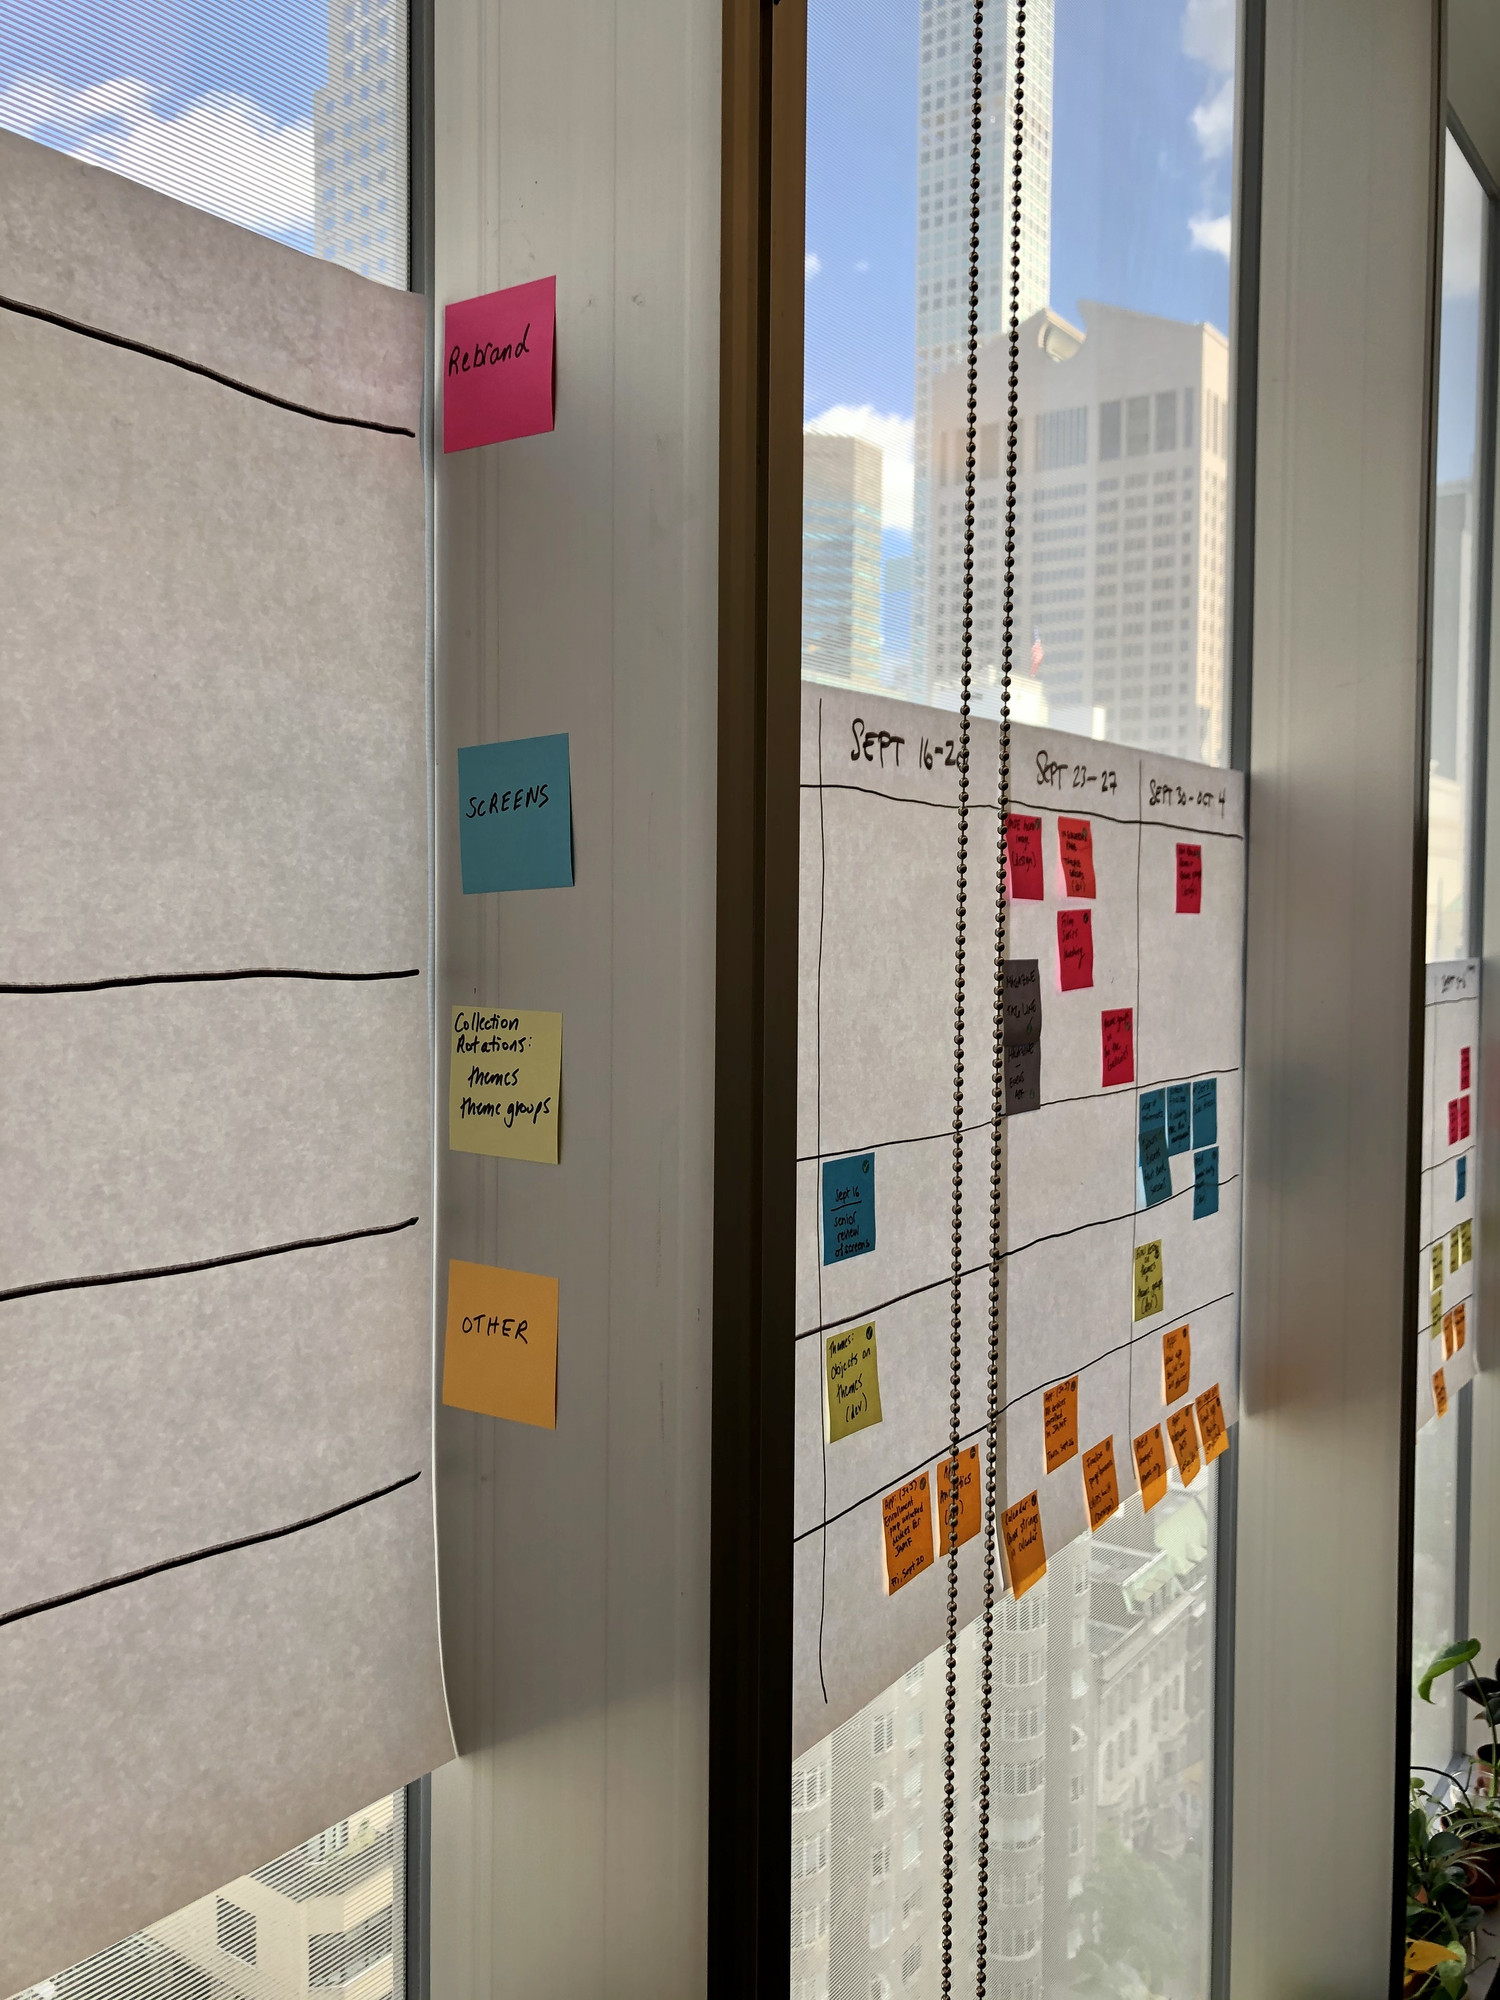 Post-it production timeline in MoMA's Digital Media department. Photo: Jennifer Tobias